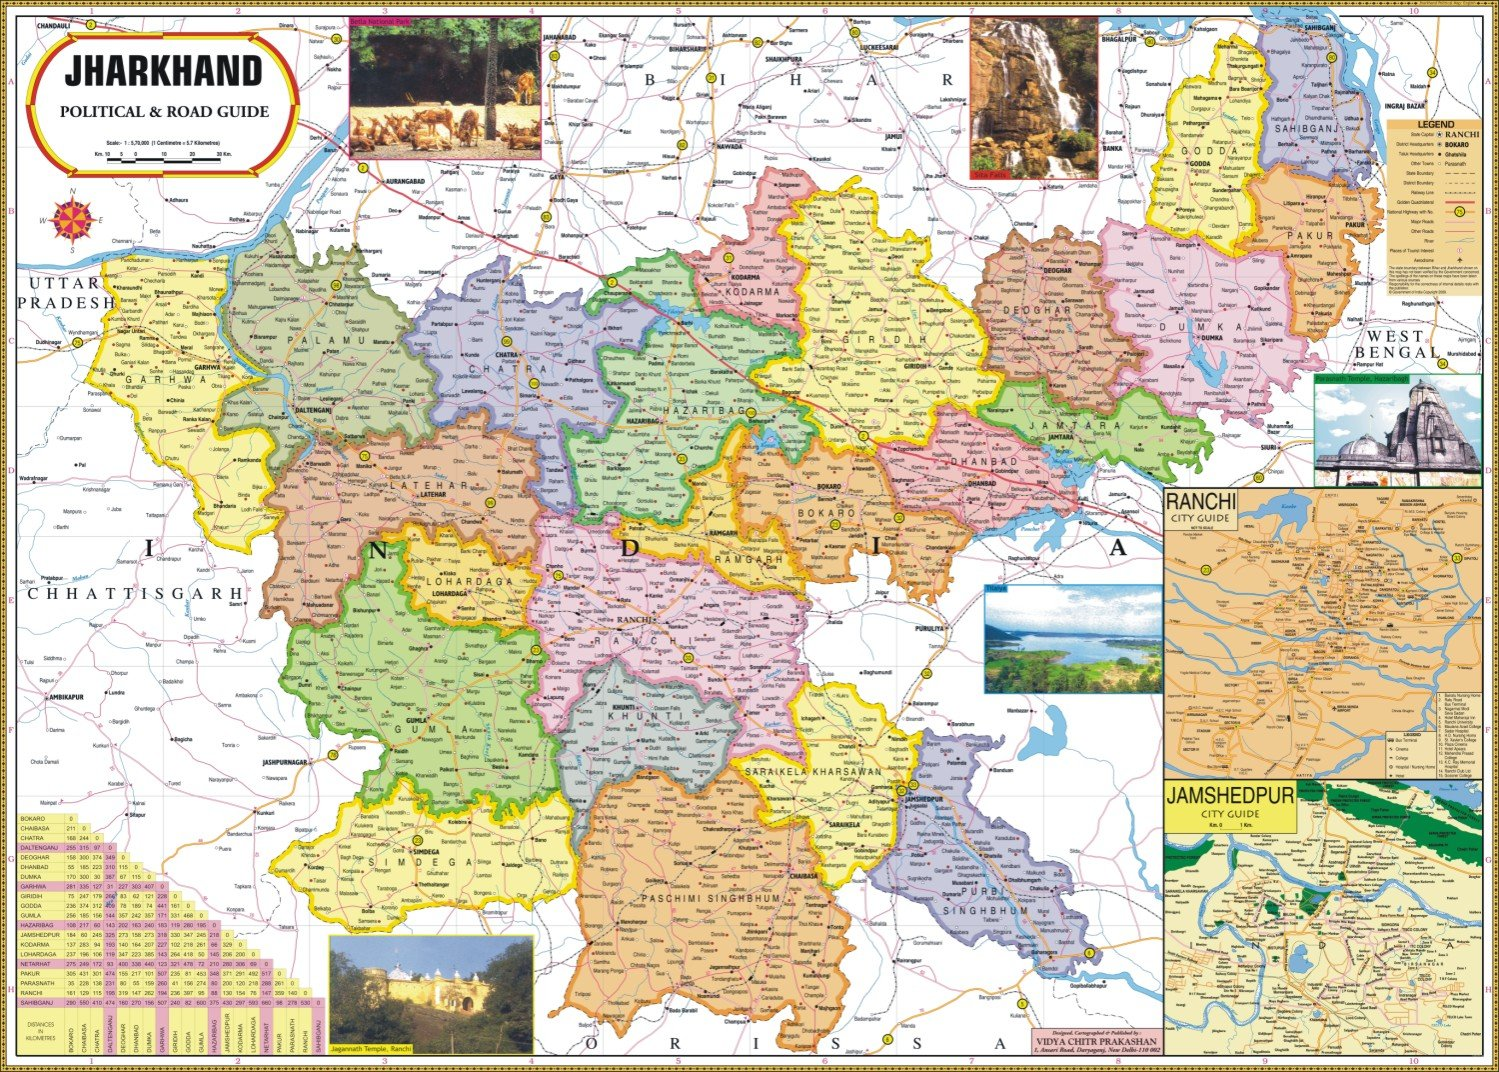 Buy Jharkhand Map Book Online at Low